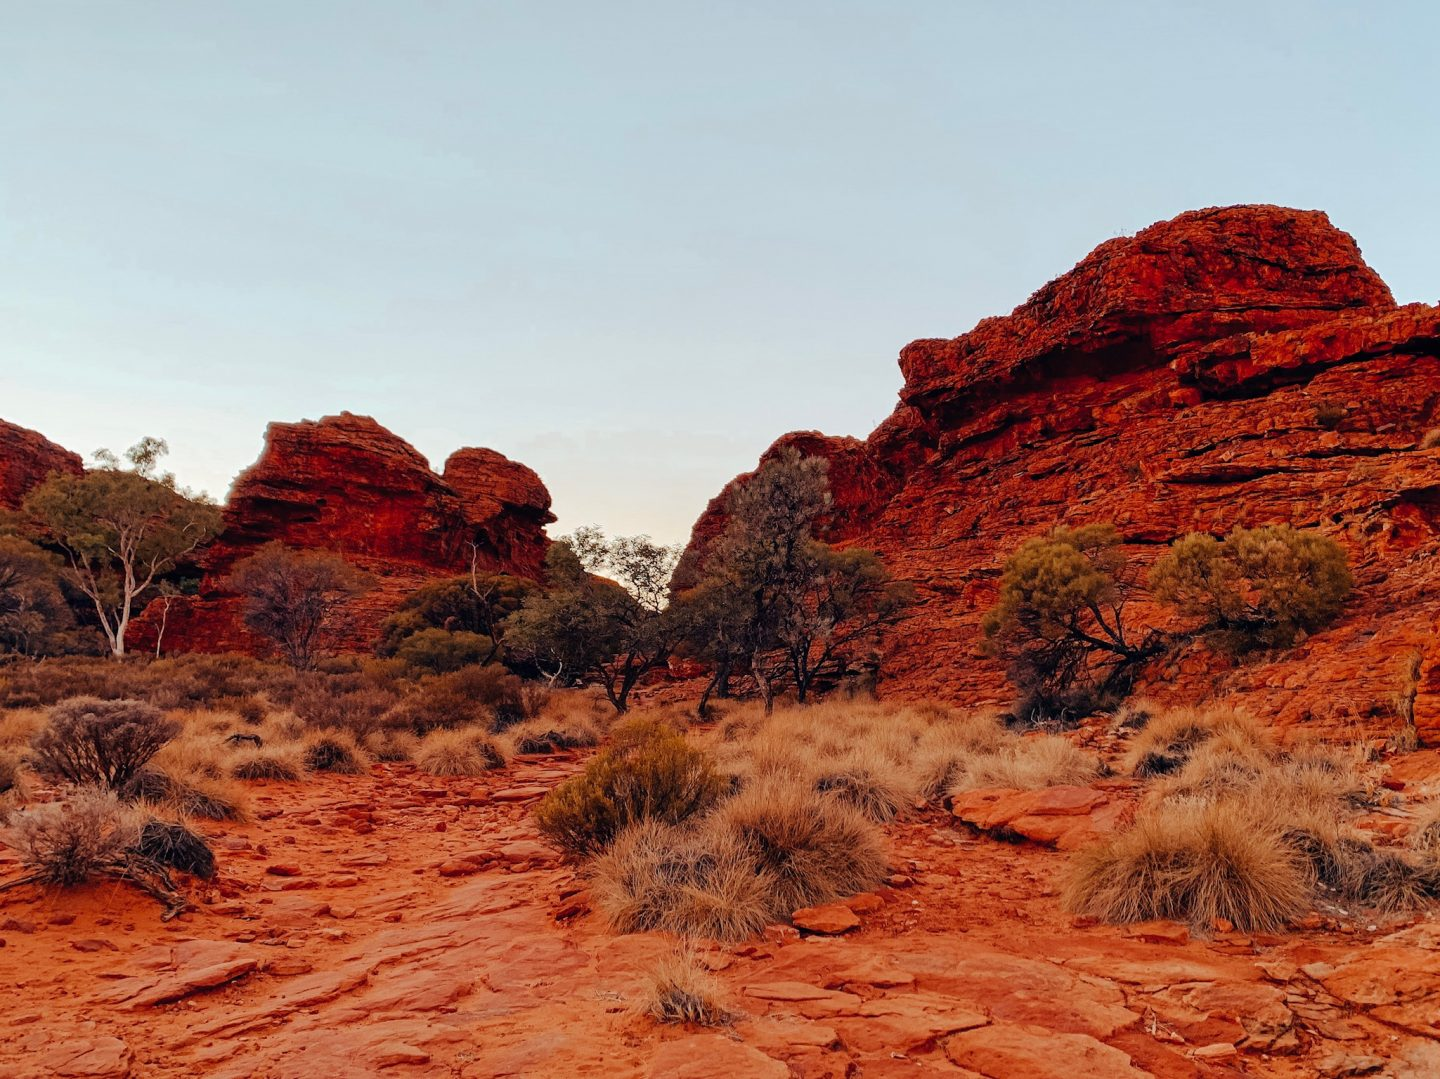 Hiking the Olgas in the Australian Outback.